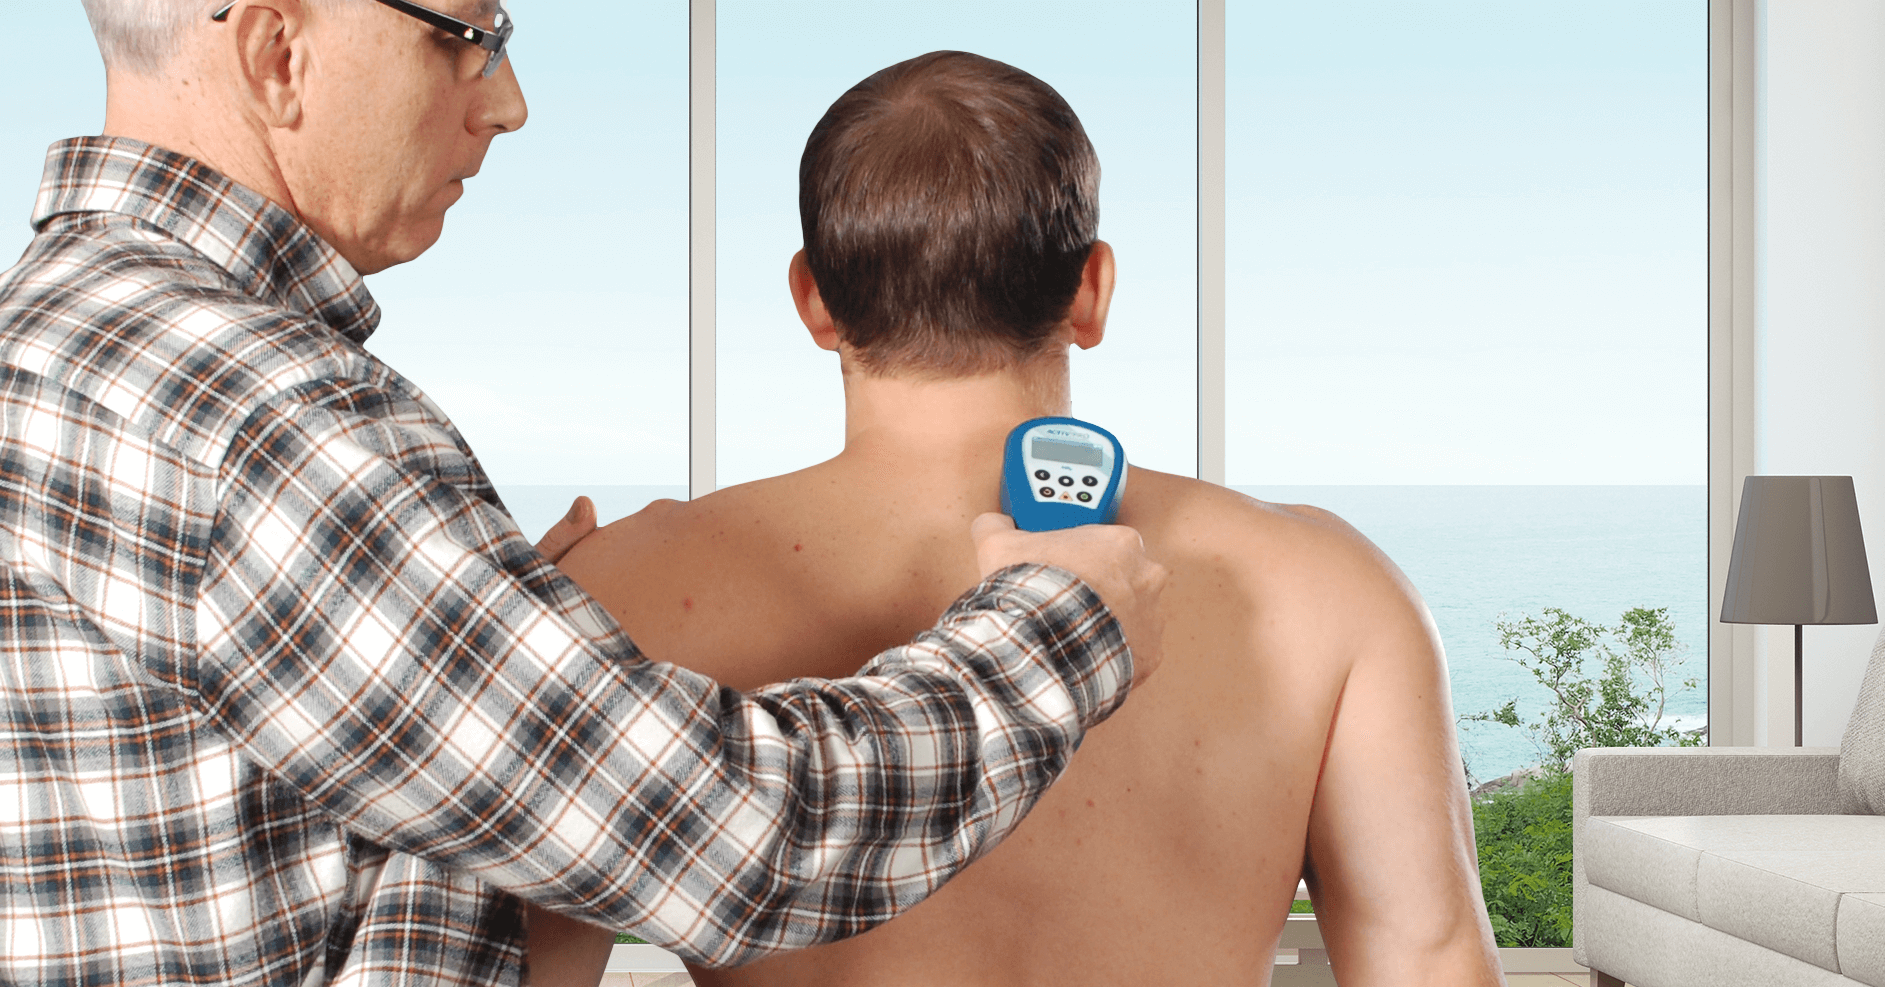 Multi Radiance Super Pulsed Laser Therapy cleared for neck and shoulder pain